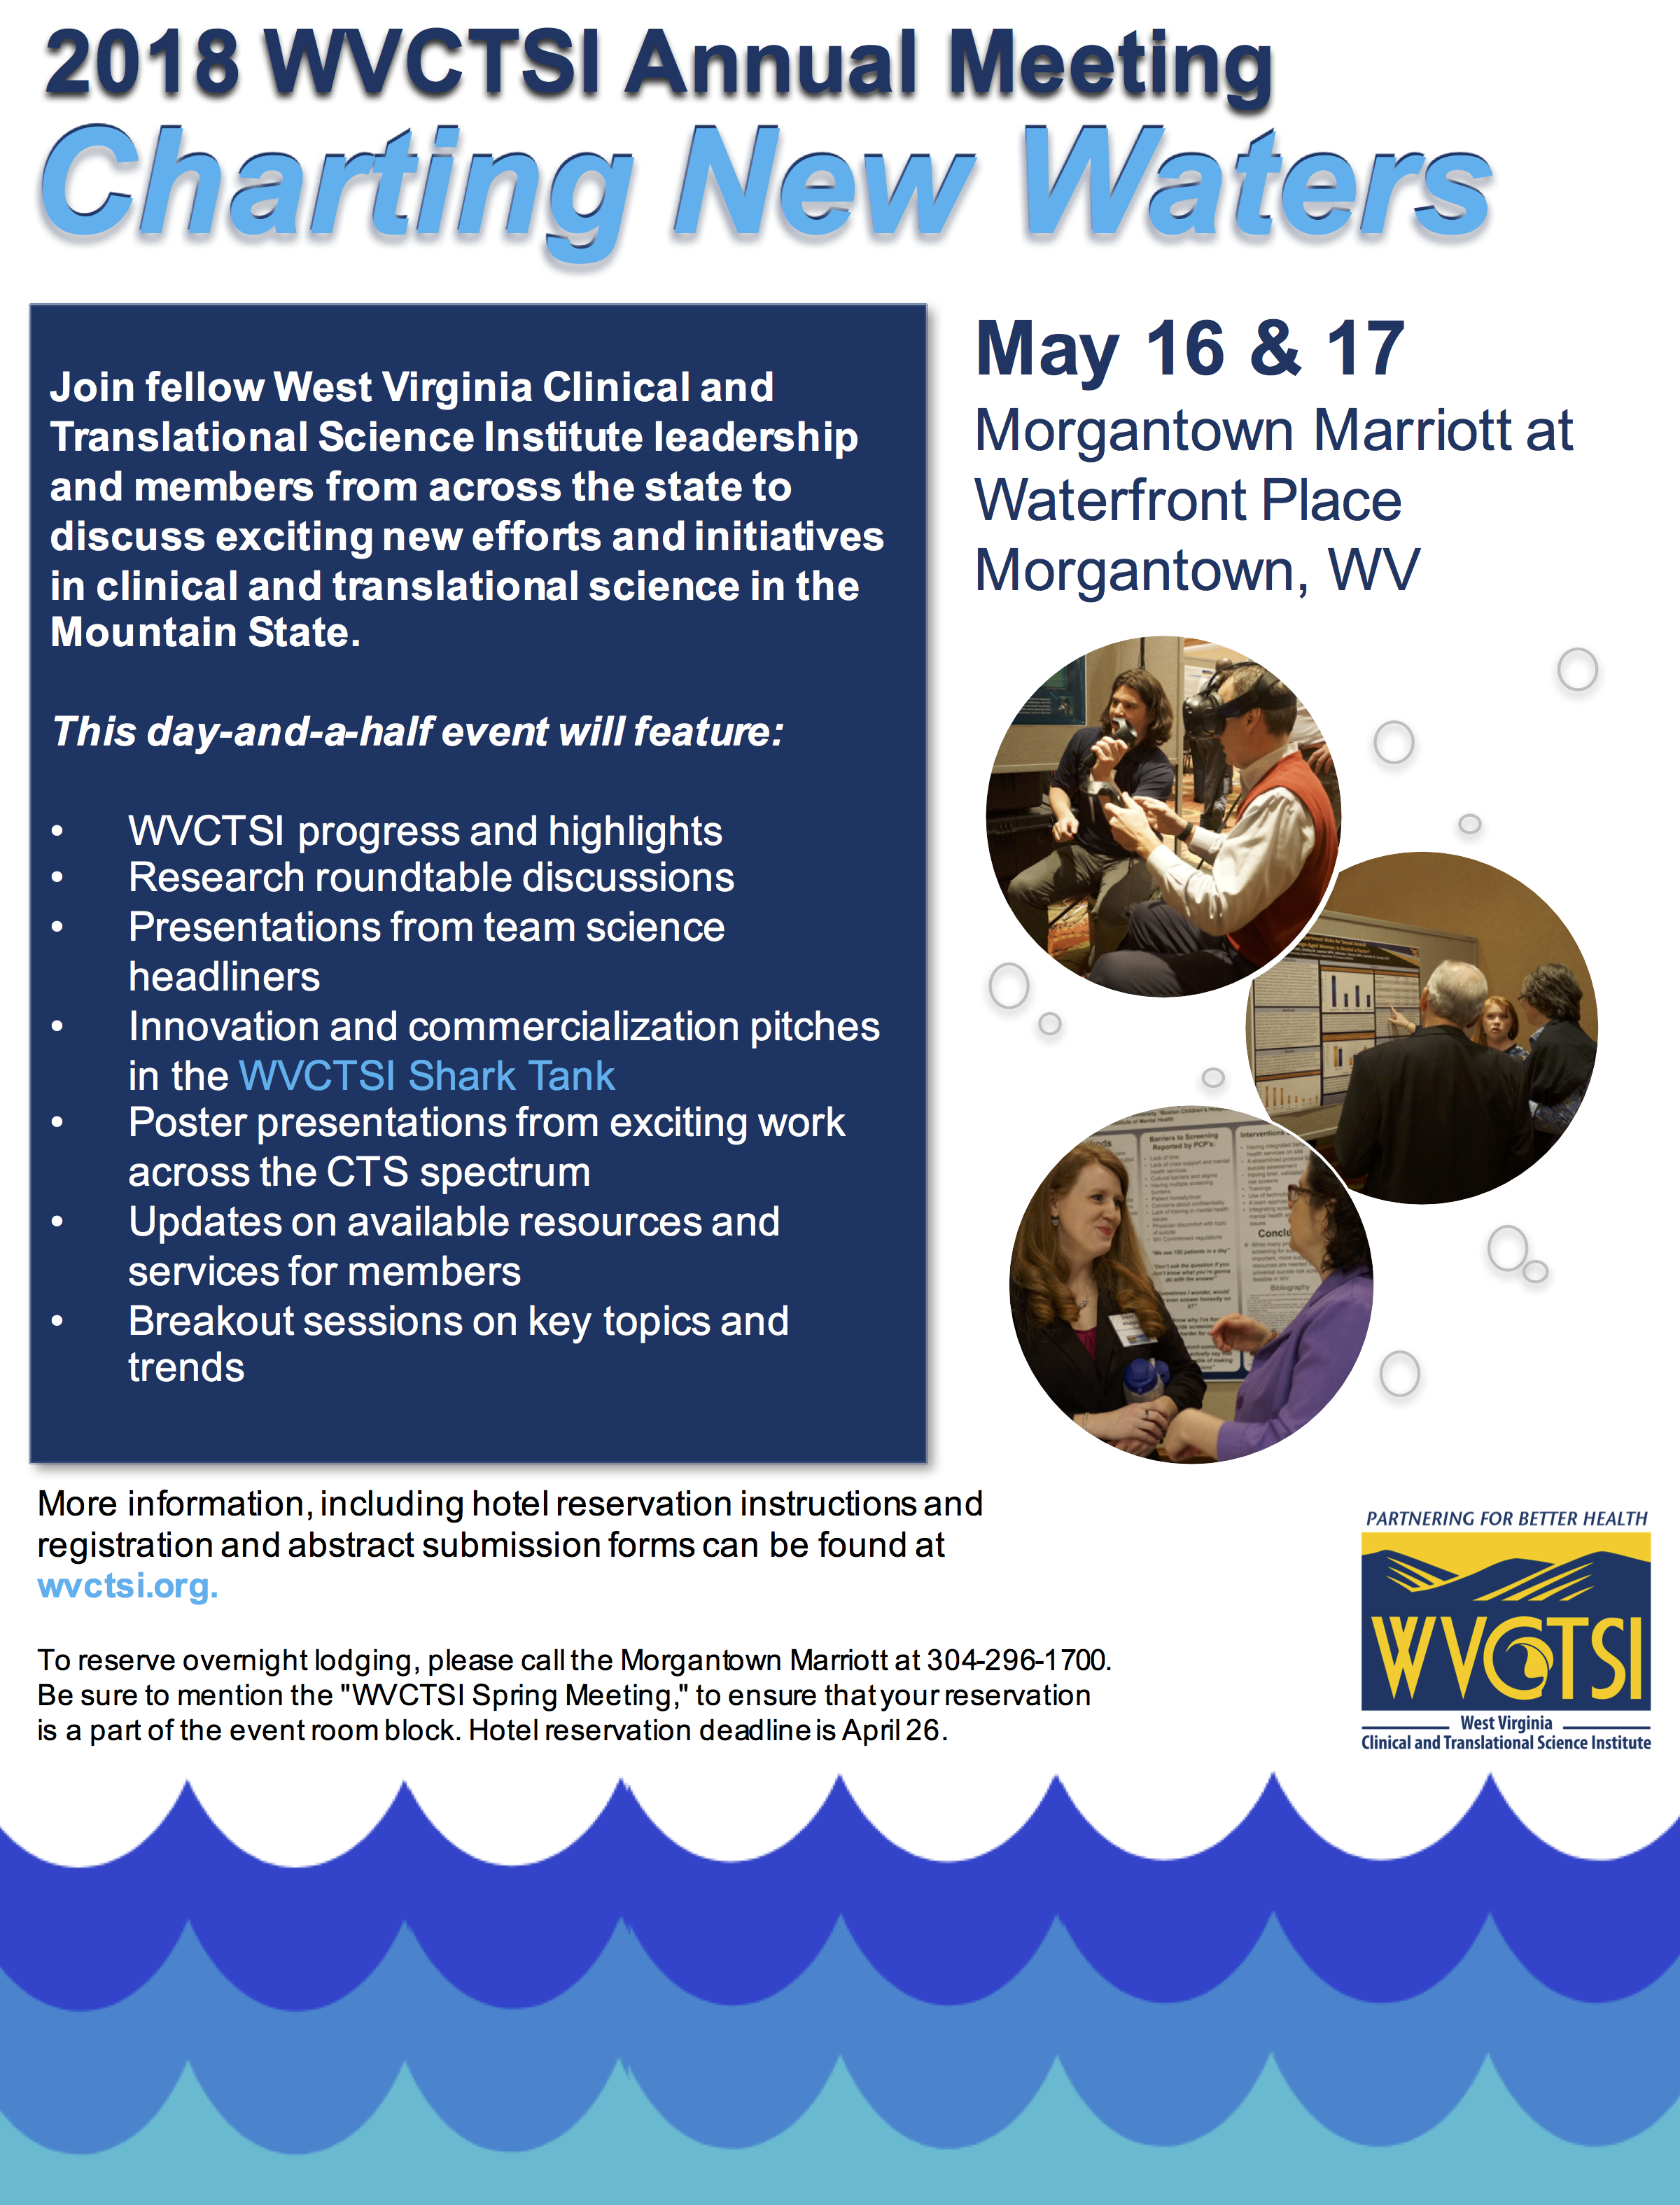 WVCTSI Annual Meeting 2018 Promo Flyer FINAL.png